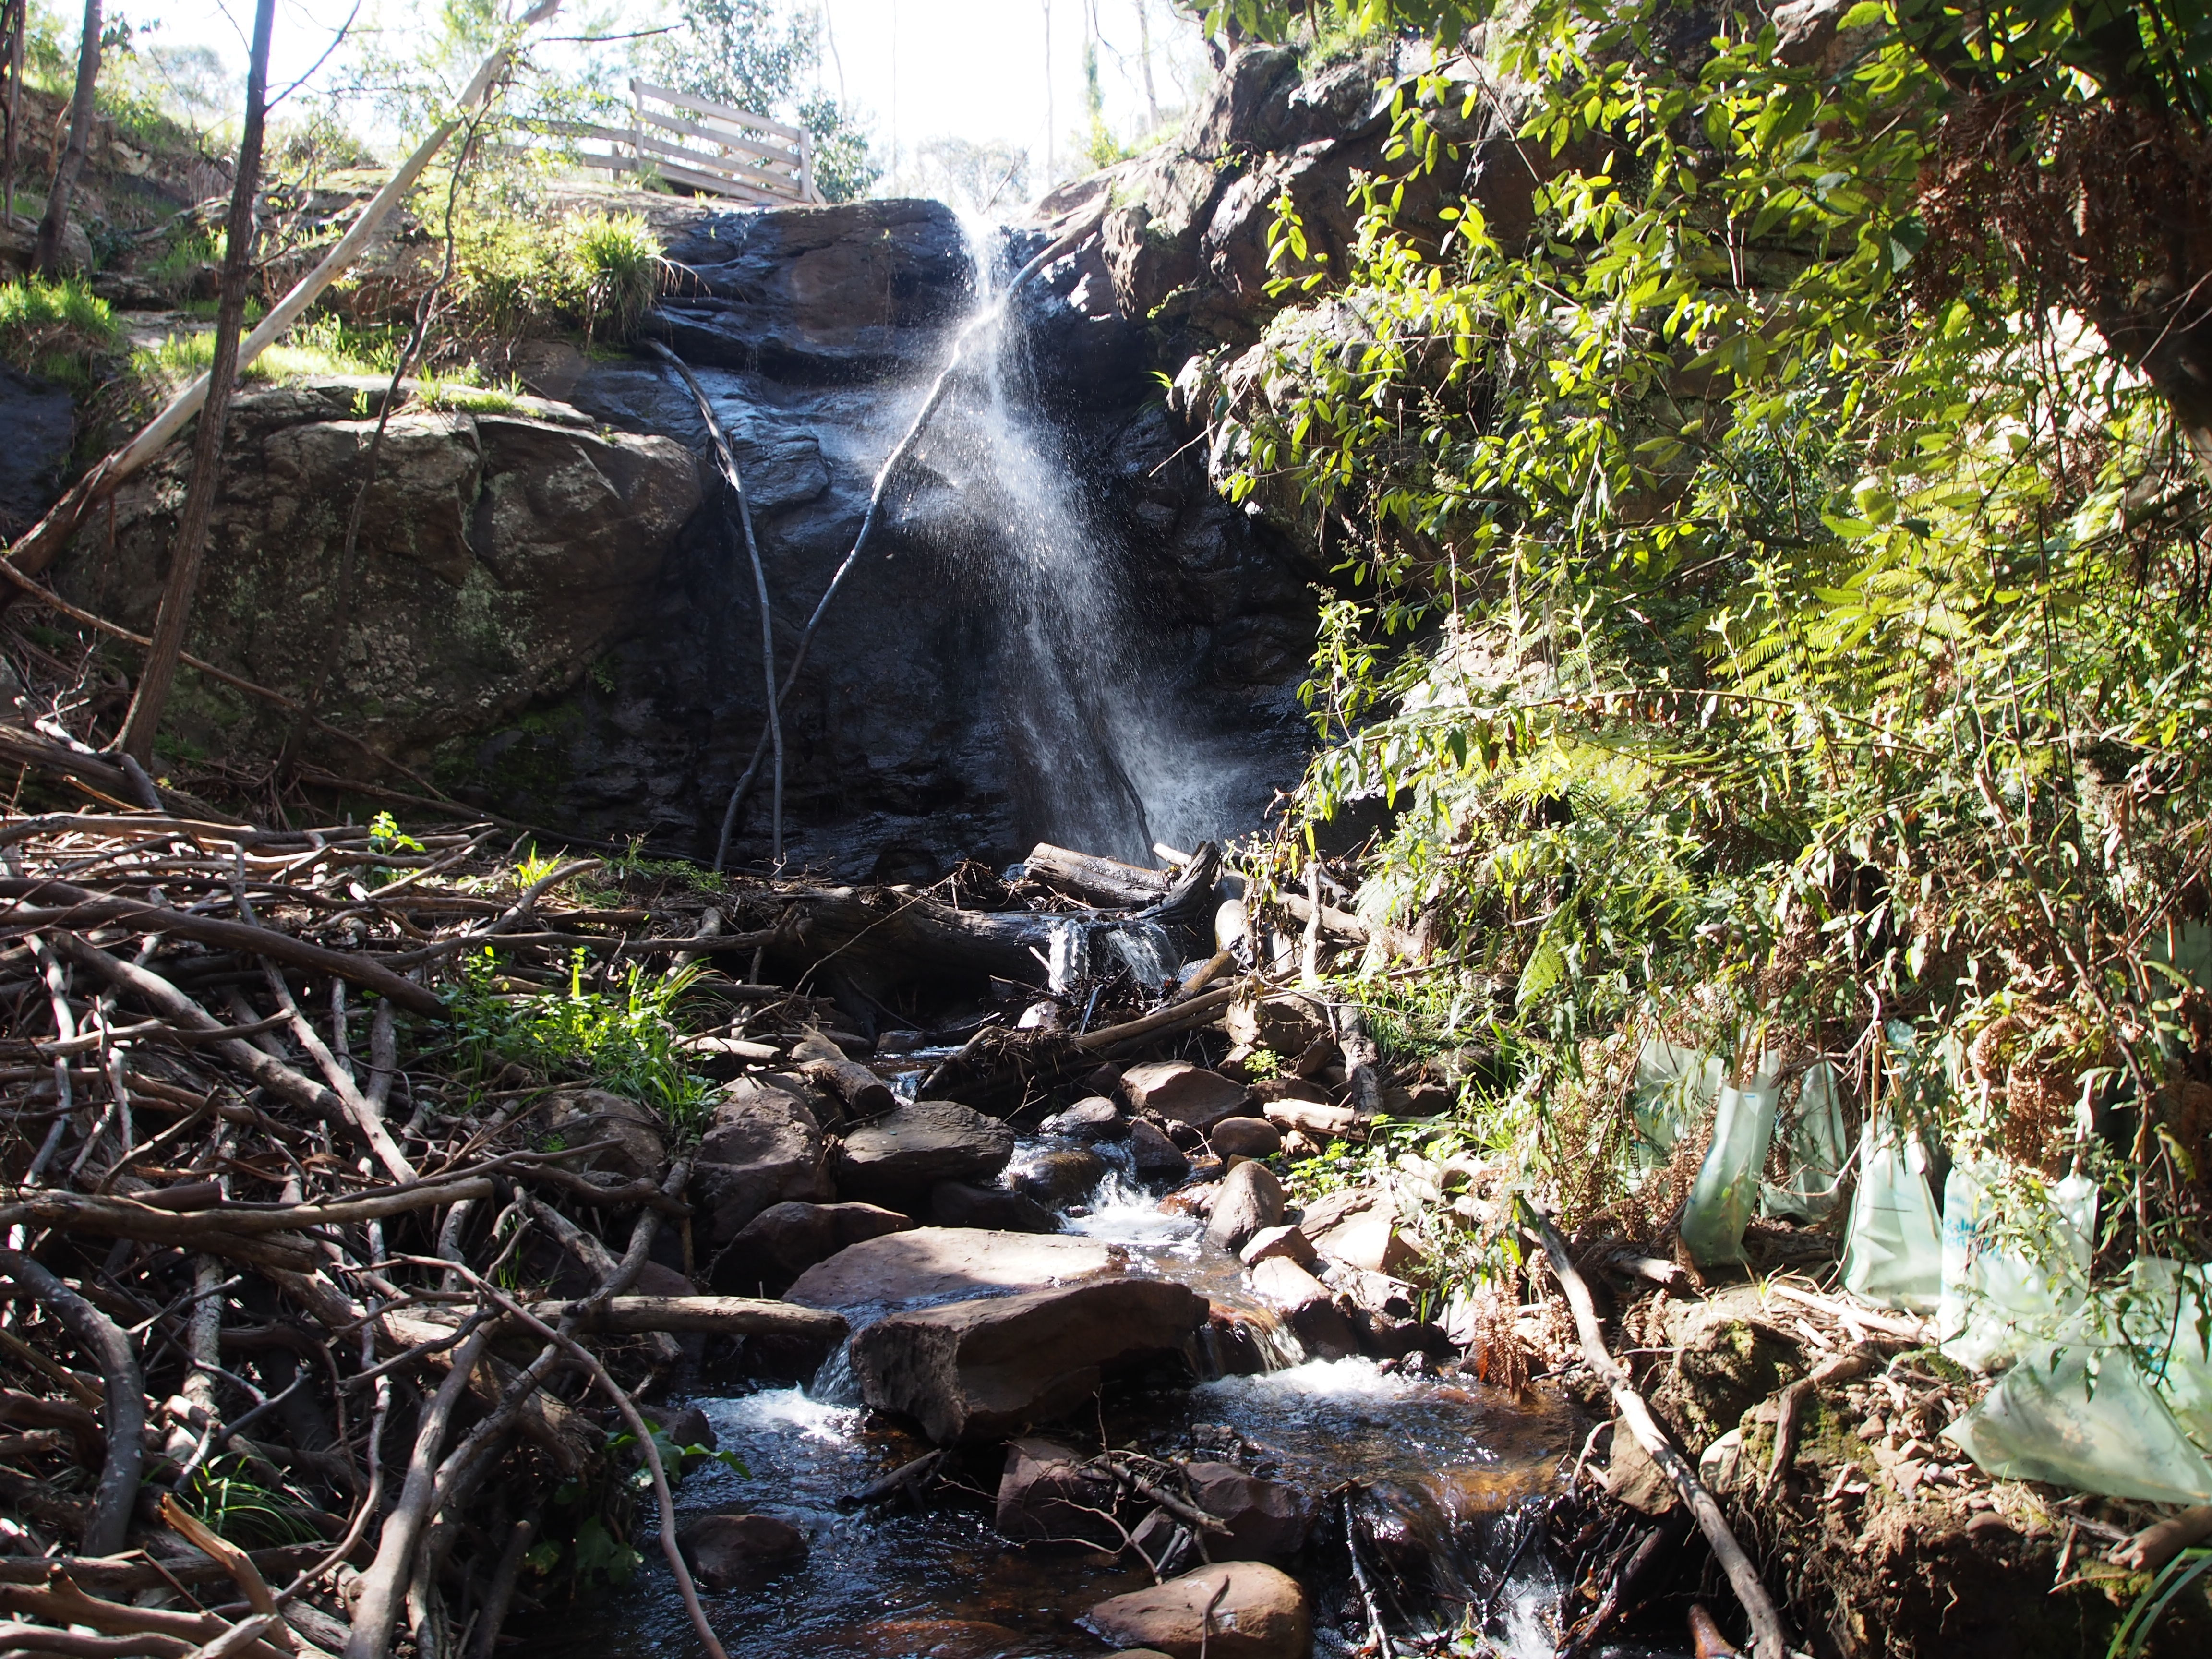 composition picnic at waterfall Gortletteragh waterfalls & forest, stranorlar 44 likes 152 were here picnic ground.